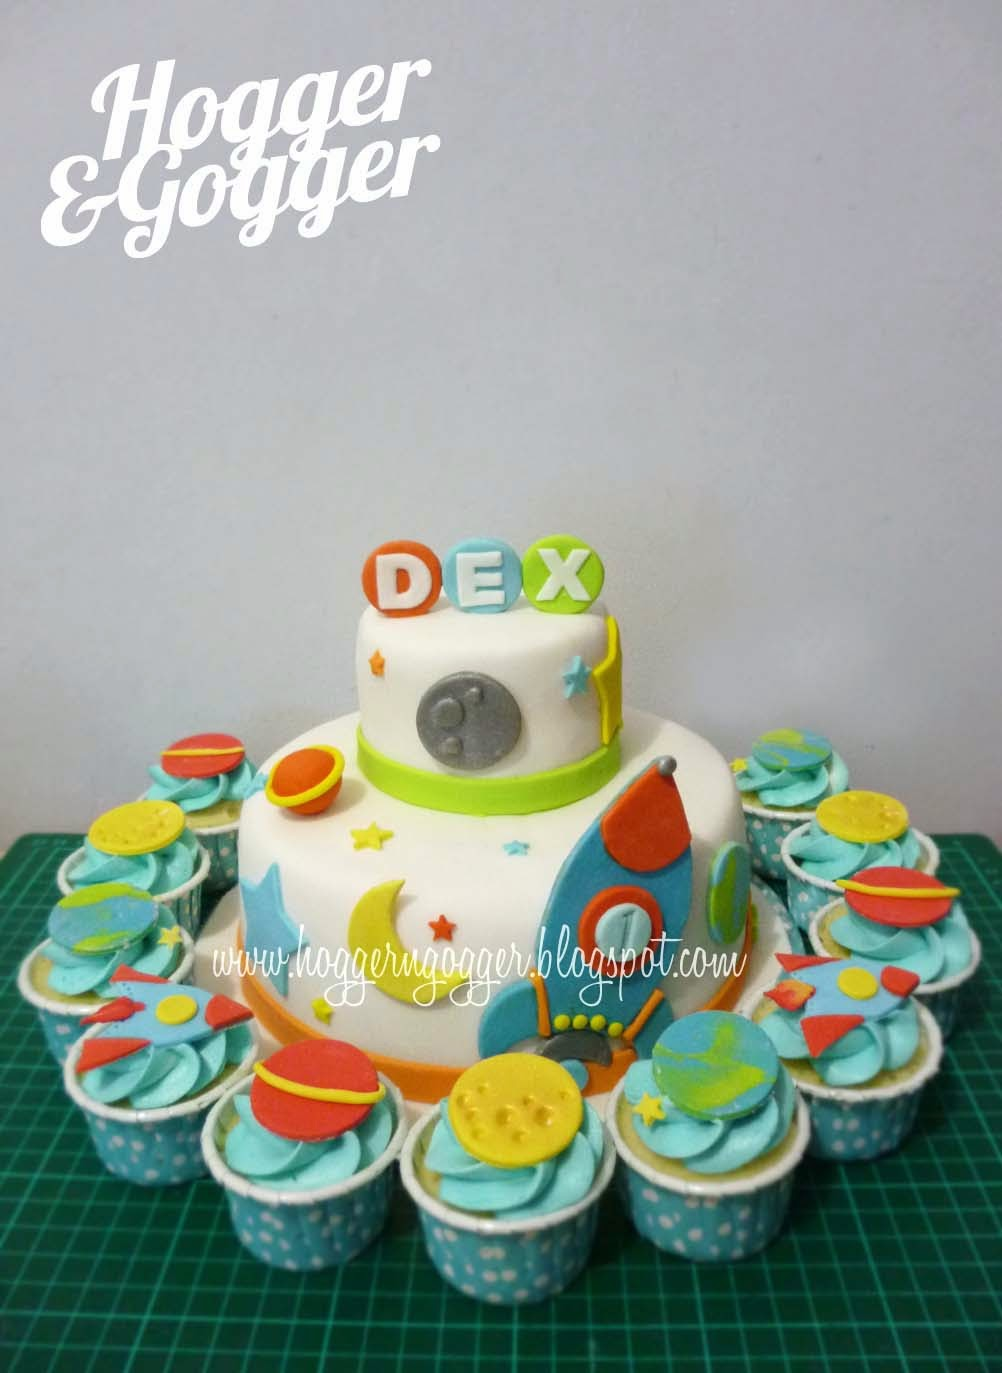 Hogger Amp Gogger Outer Space Birthday Cake And Cupcakes